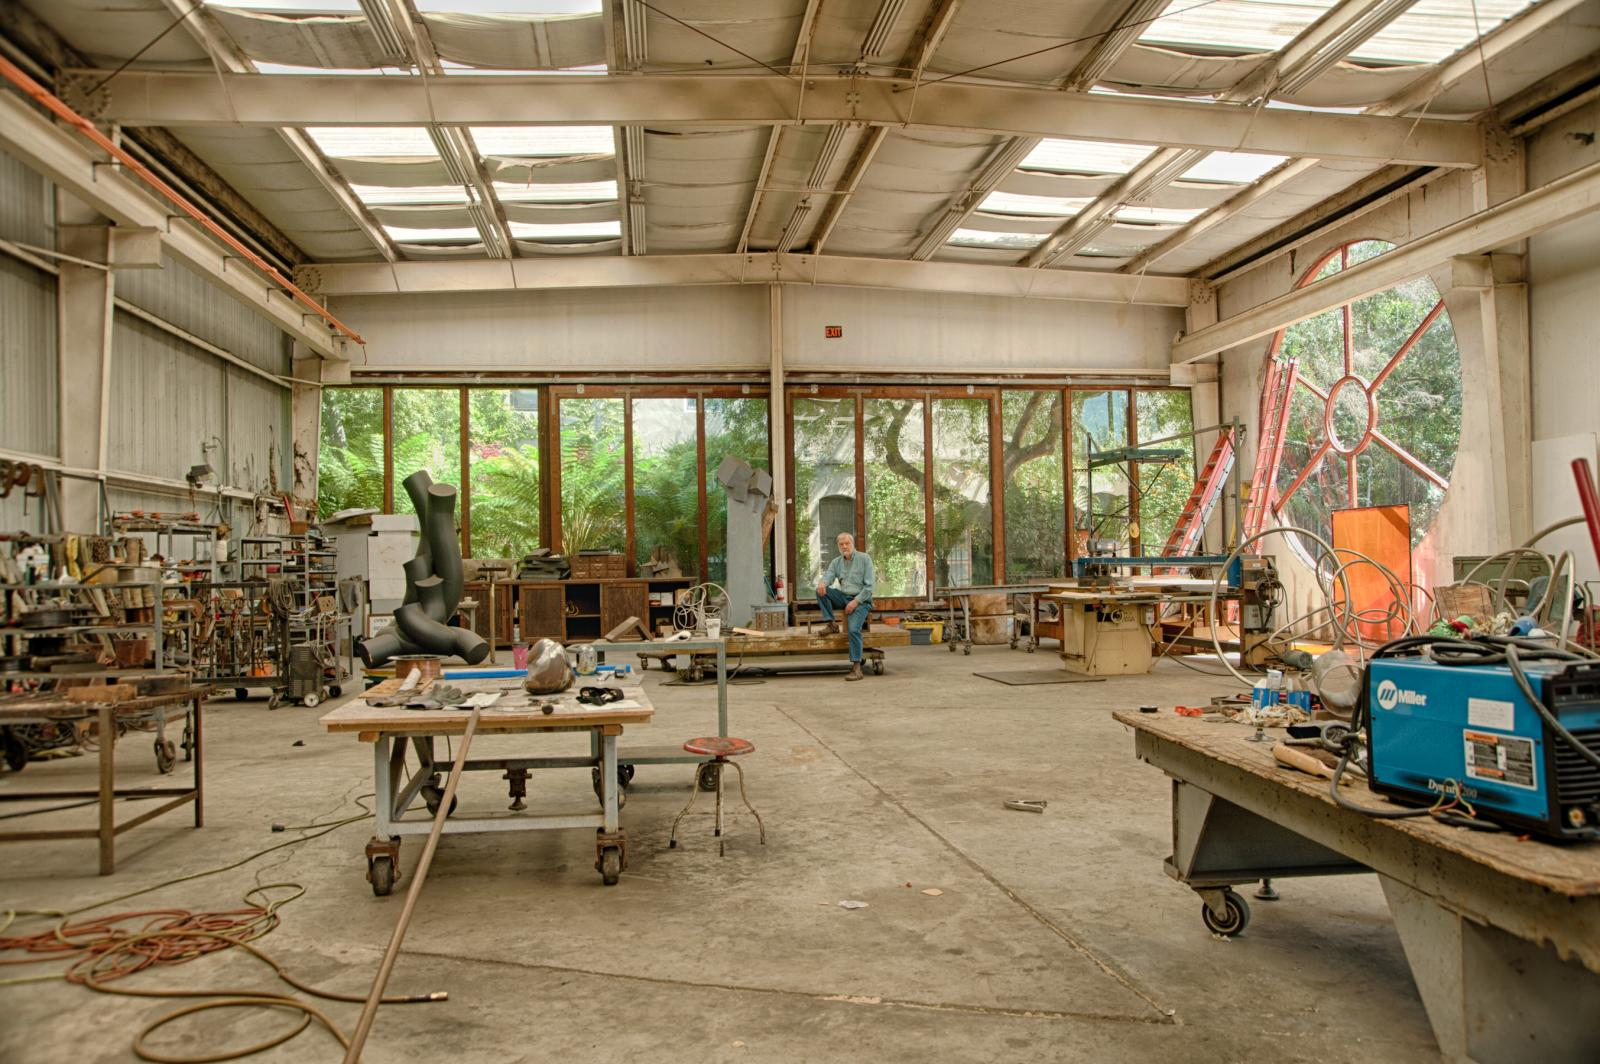 Bruce in his large studio building on Lewis at The Prescott Park.